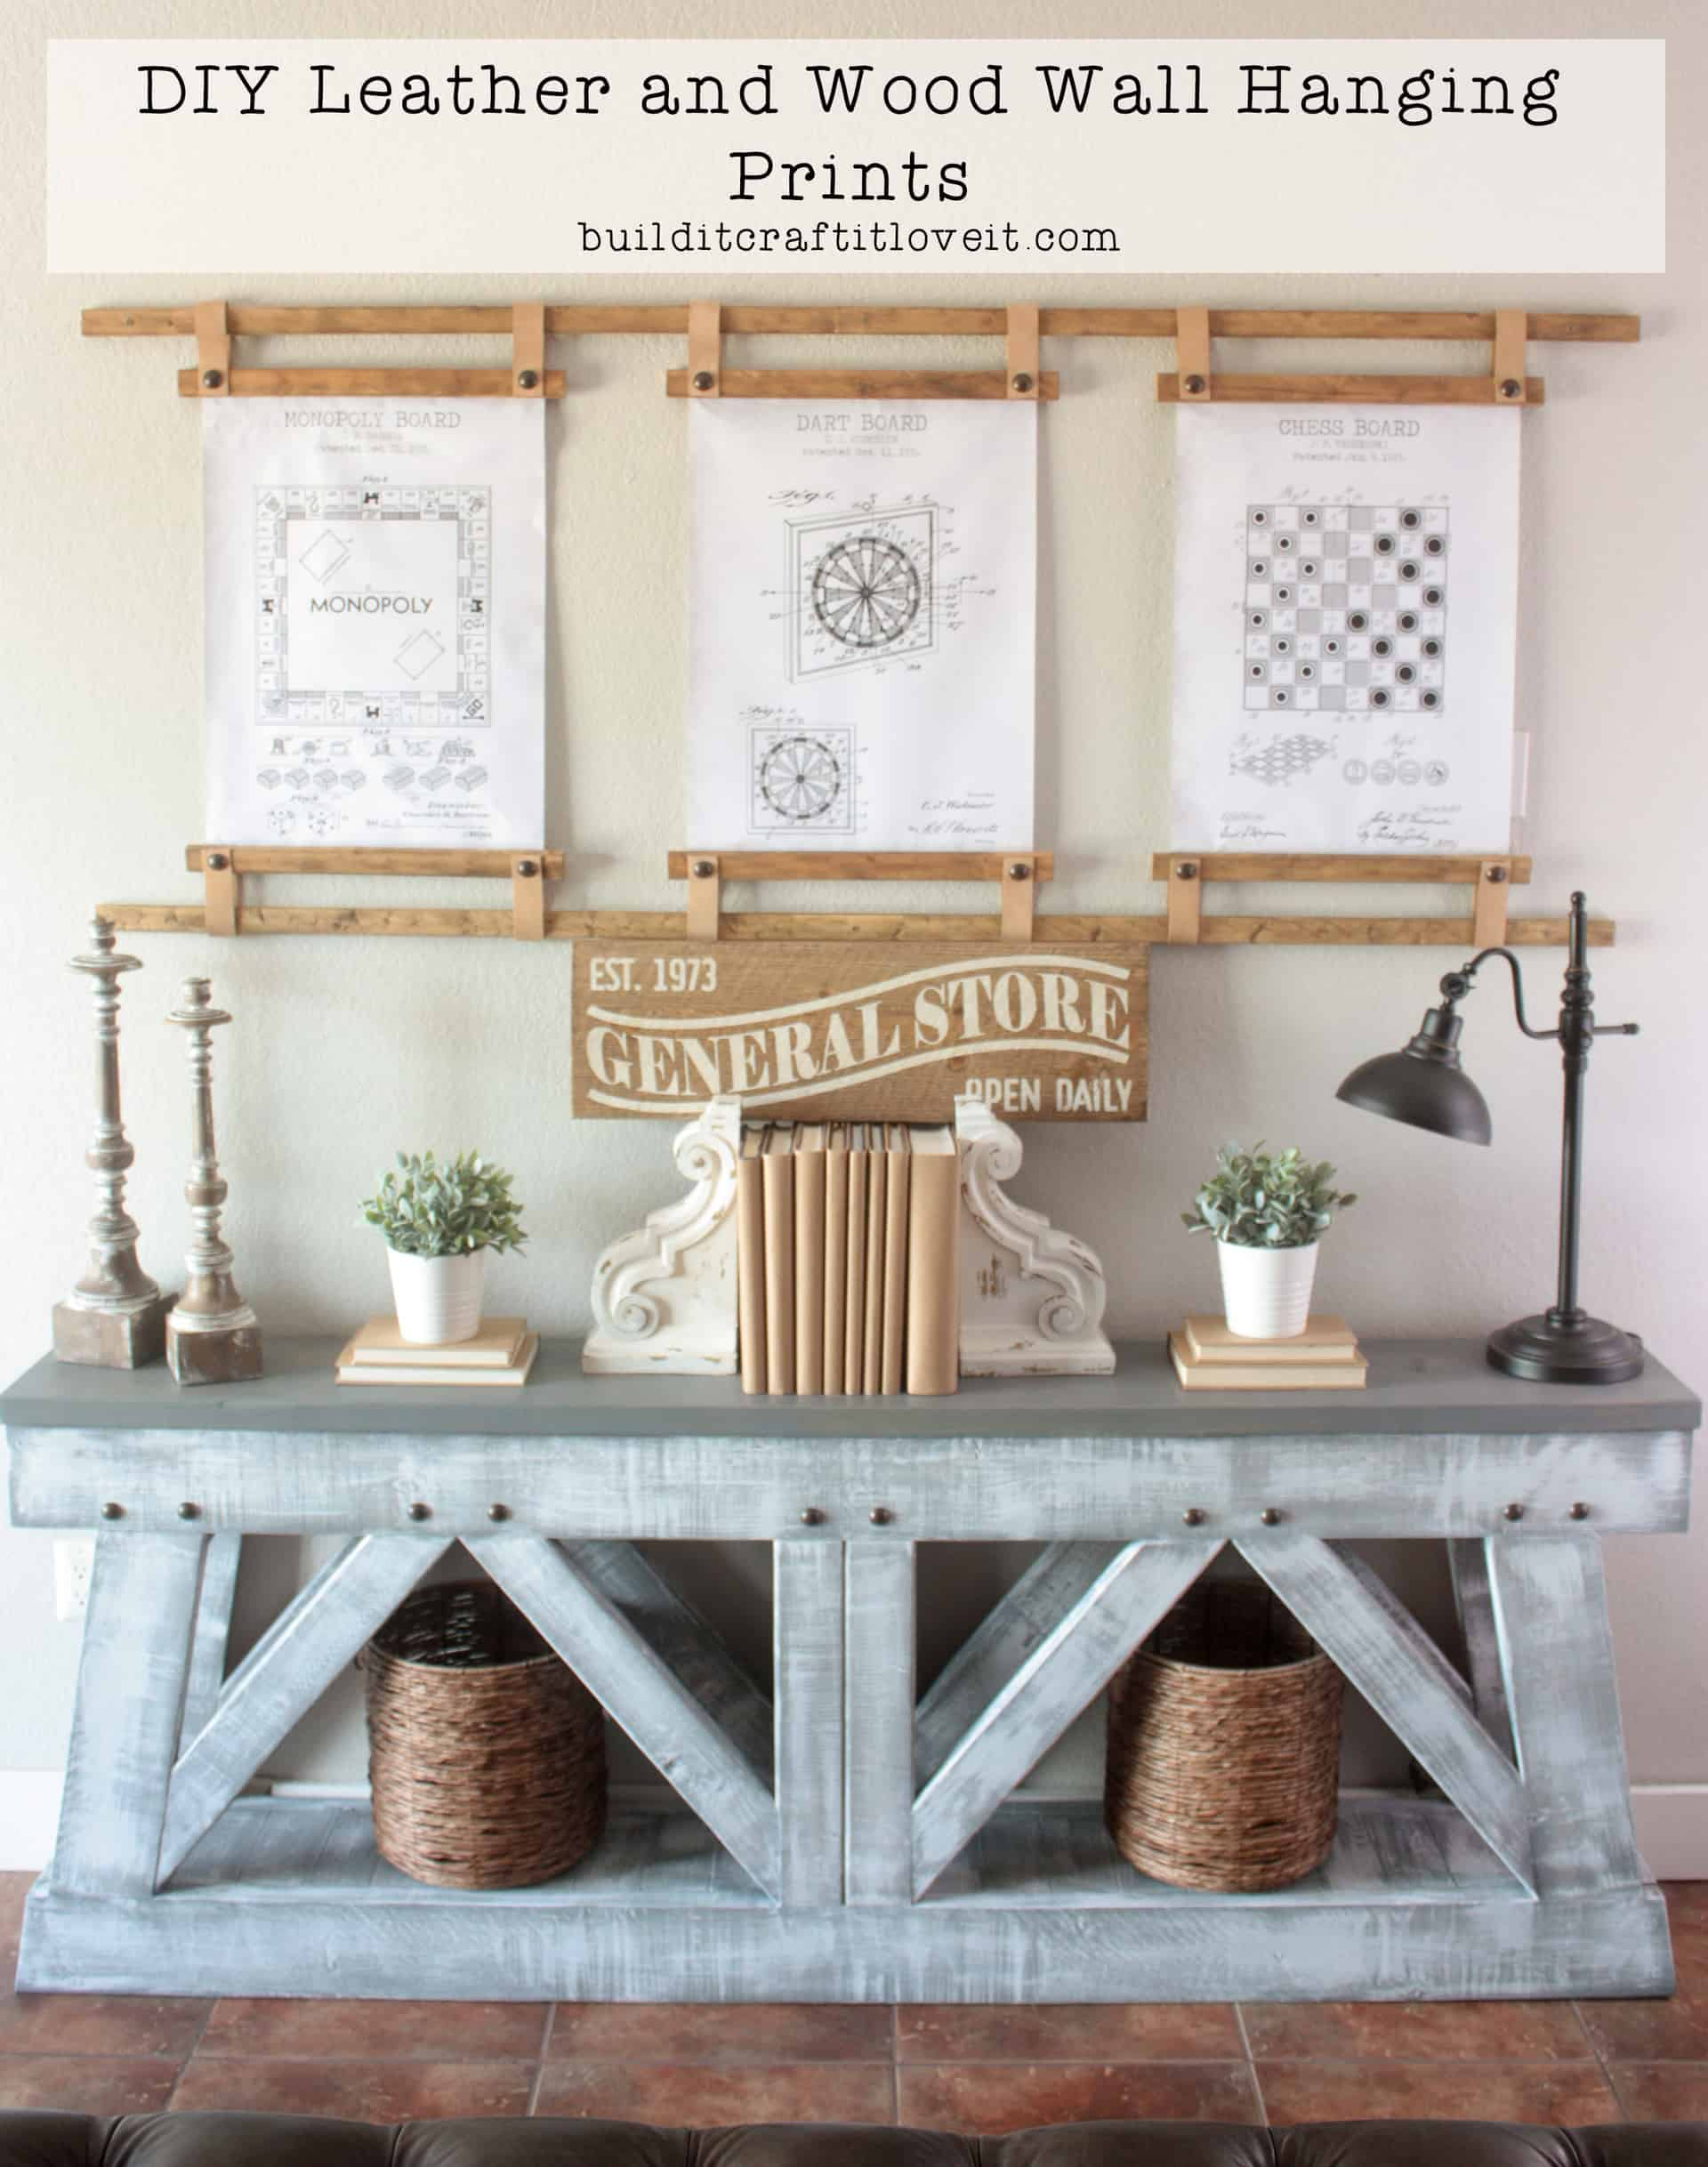 DIY Leather and Wood Wall Hanging Frames